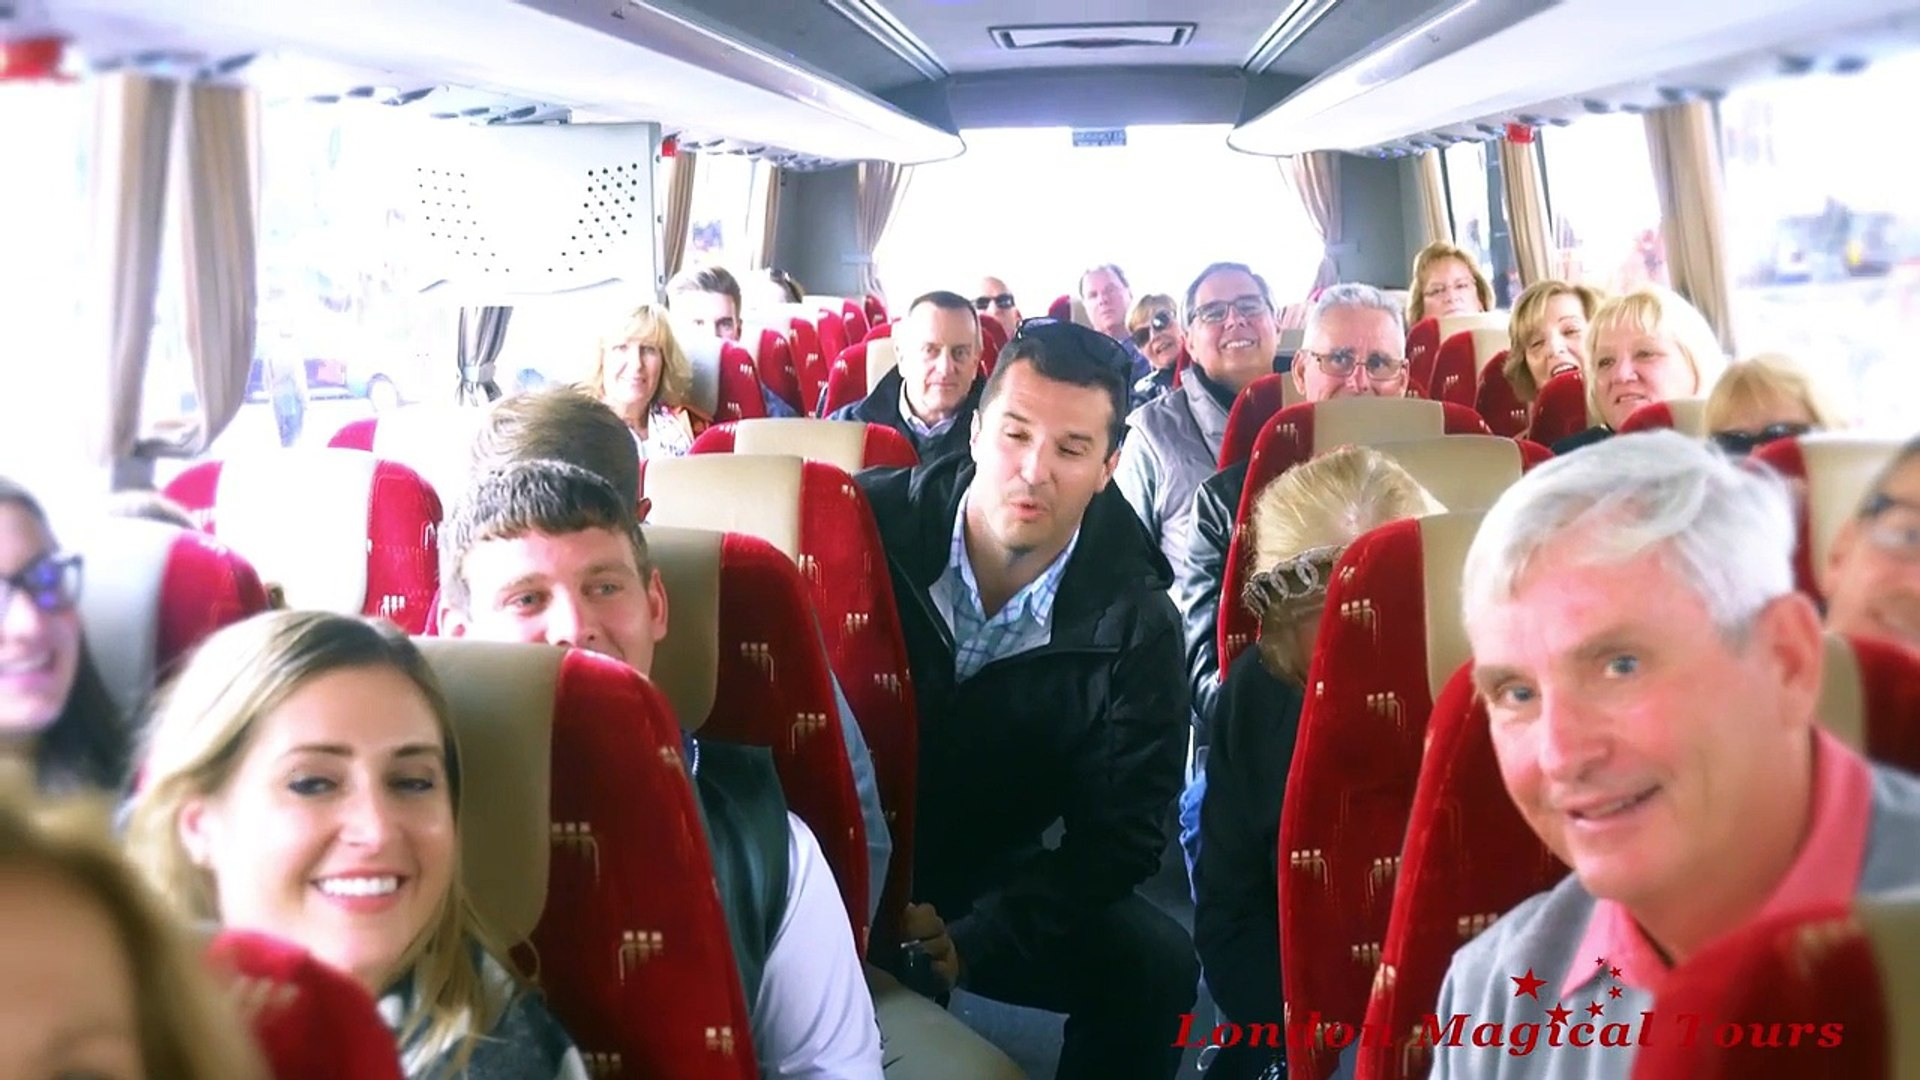 London Group Travel & Events